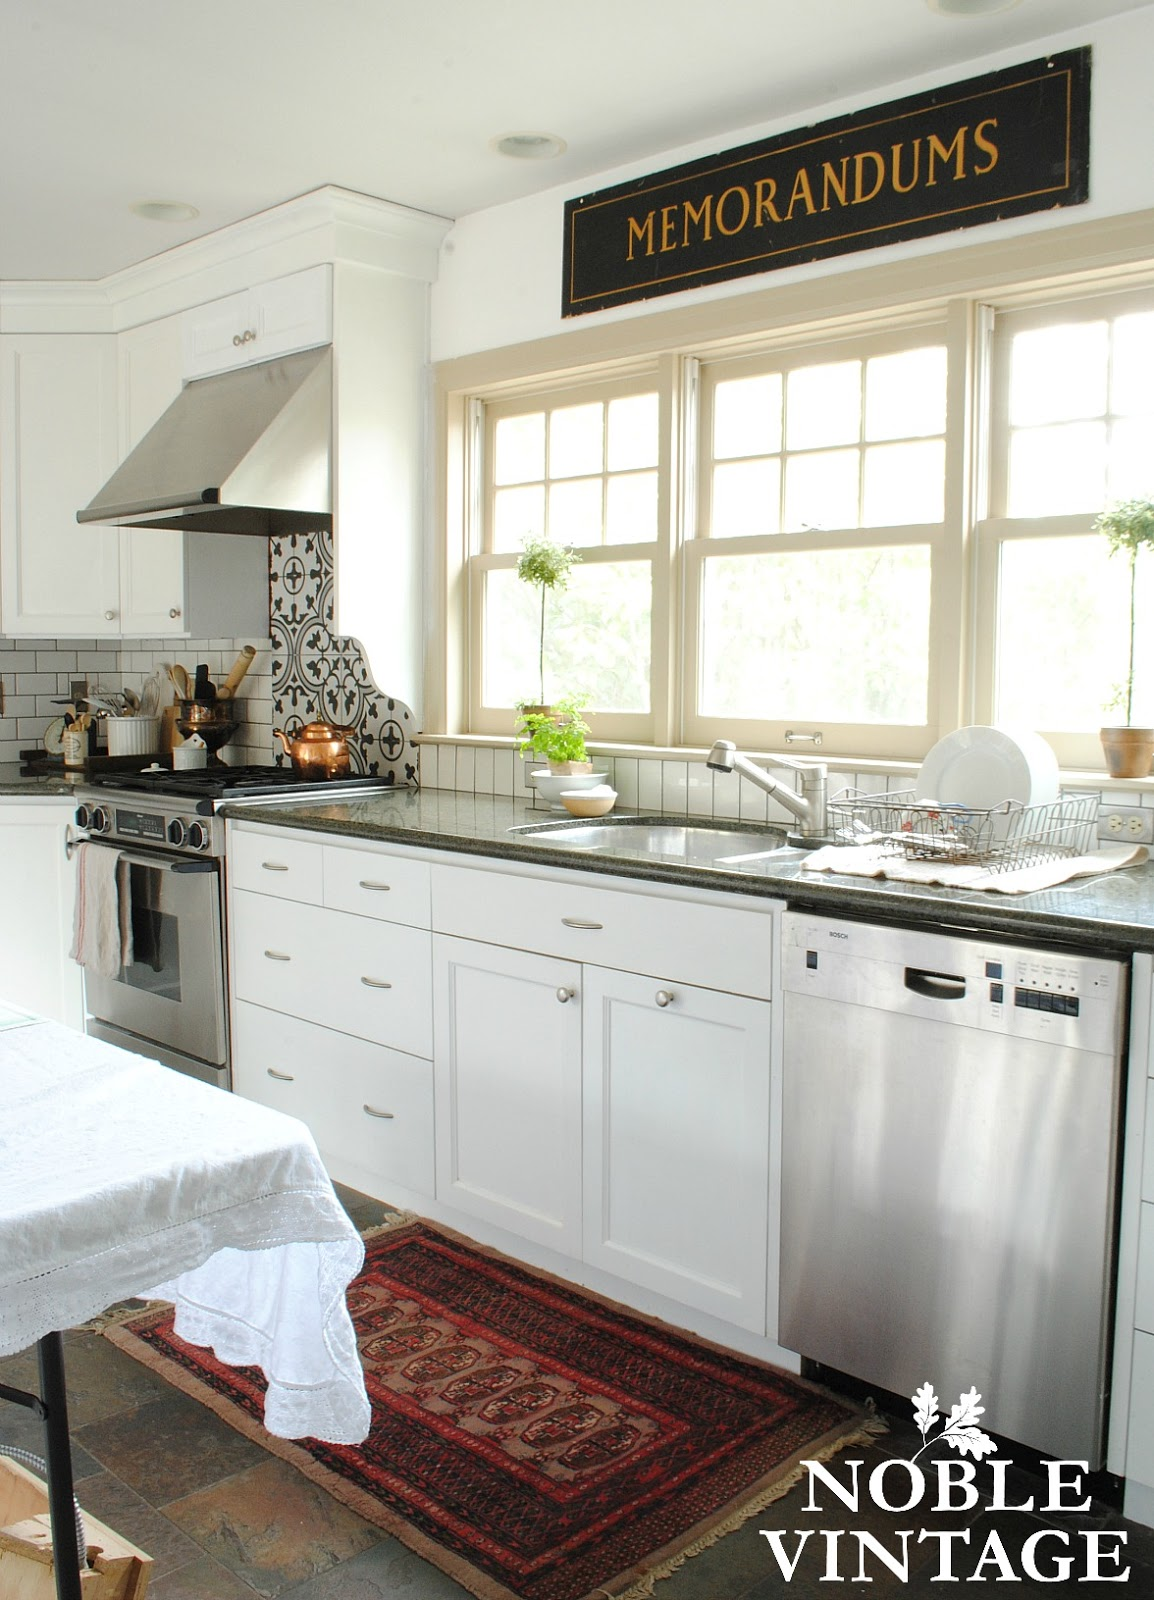 white cottage kitchen - before and after - Noble Vintage